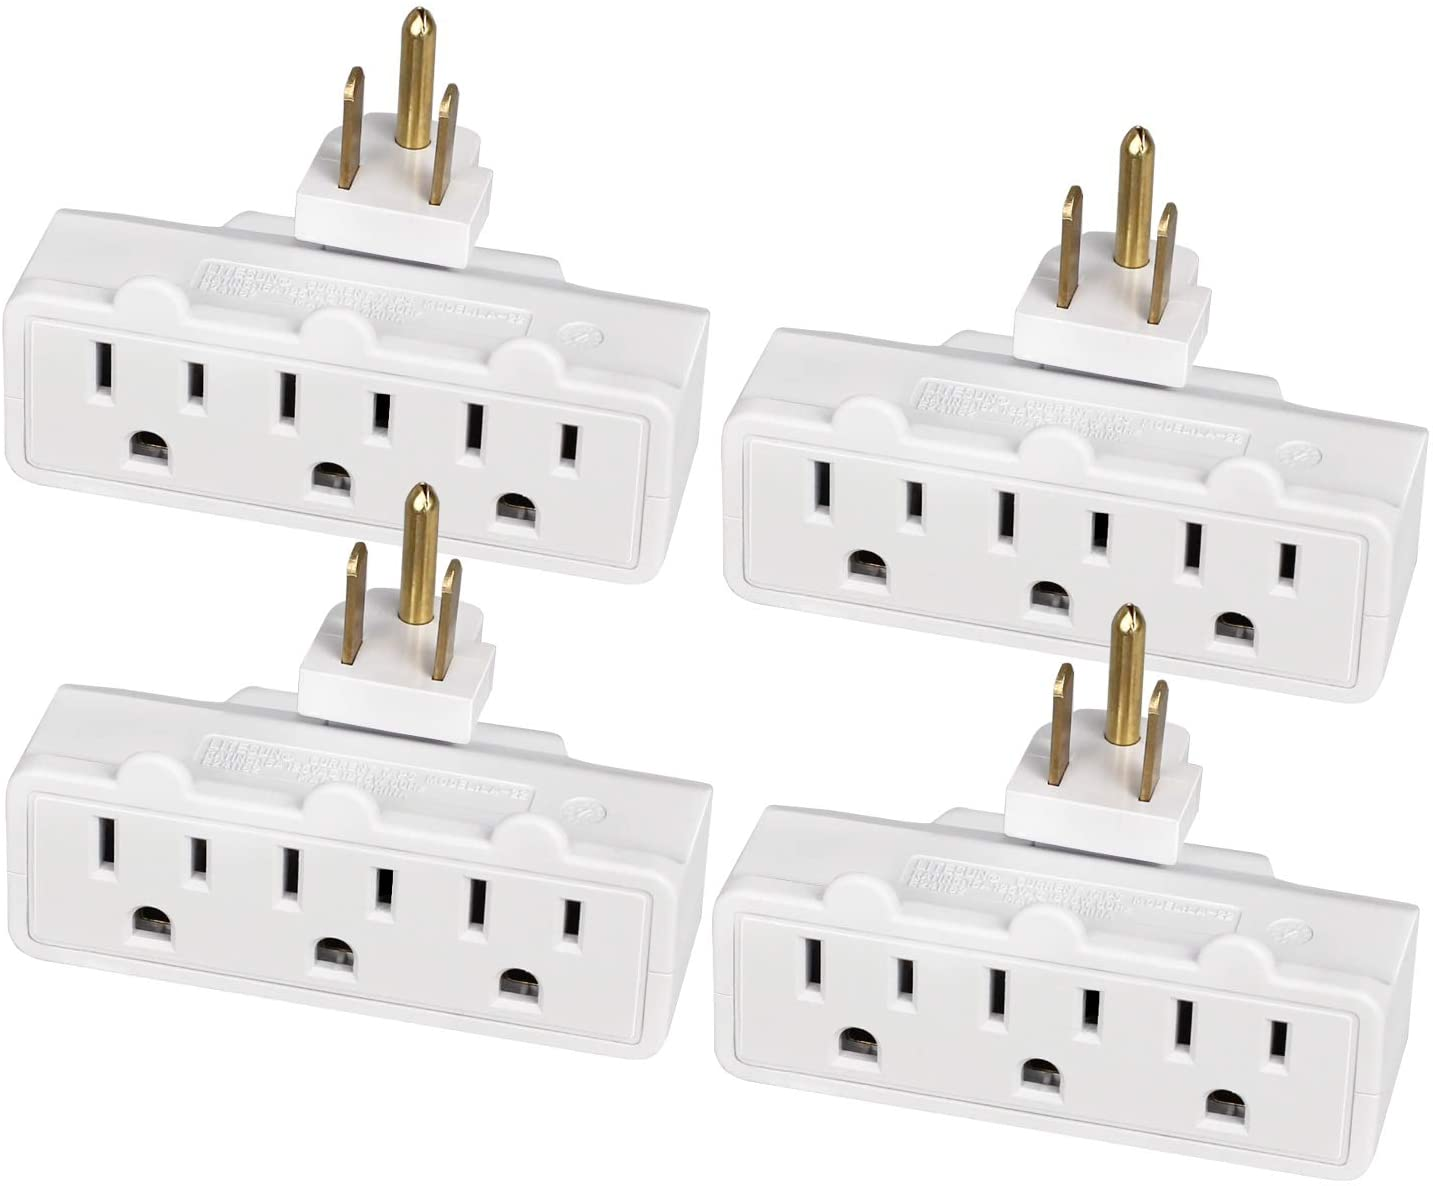 ABBOTECH 3 Grounded Outlet Wall Tap,Outlet Extender,180 Degree Swivel Outlet Plug,4 Pack,ETL listed